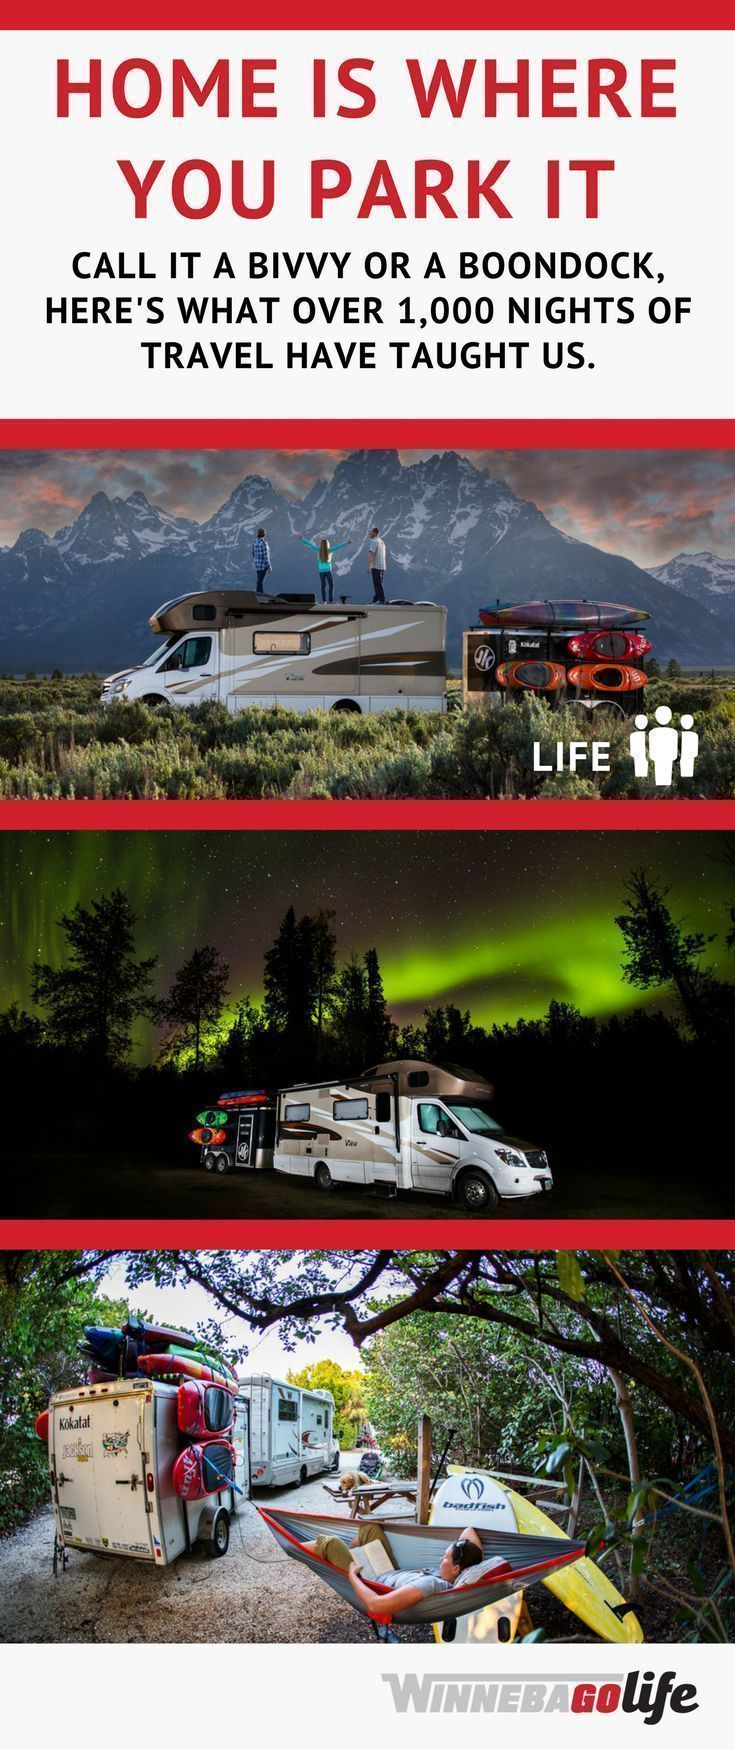 5 tips for finding free RV camping spots! This family has parked all over the U.S. in beautiful scenic spots for #free and share all their secrets and hacks for locating the spots and avoiding trouble. If you're taking an RV road trip on a budget this year, planning for RV life or currently are full-time RVing, this is a MUST read! You'll save money without sacrificing on location! #RVLife #RVLiving #RVHacks #RVFinancing #WinnebagoLife #Winnebago #RVing #RV #roadtrip #camping #rvfulltime